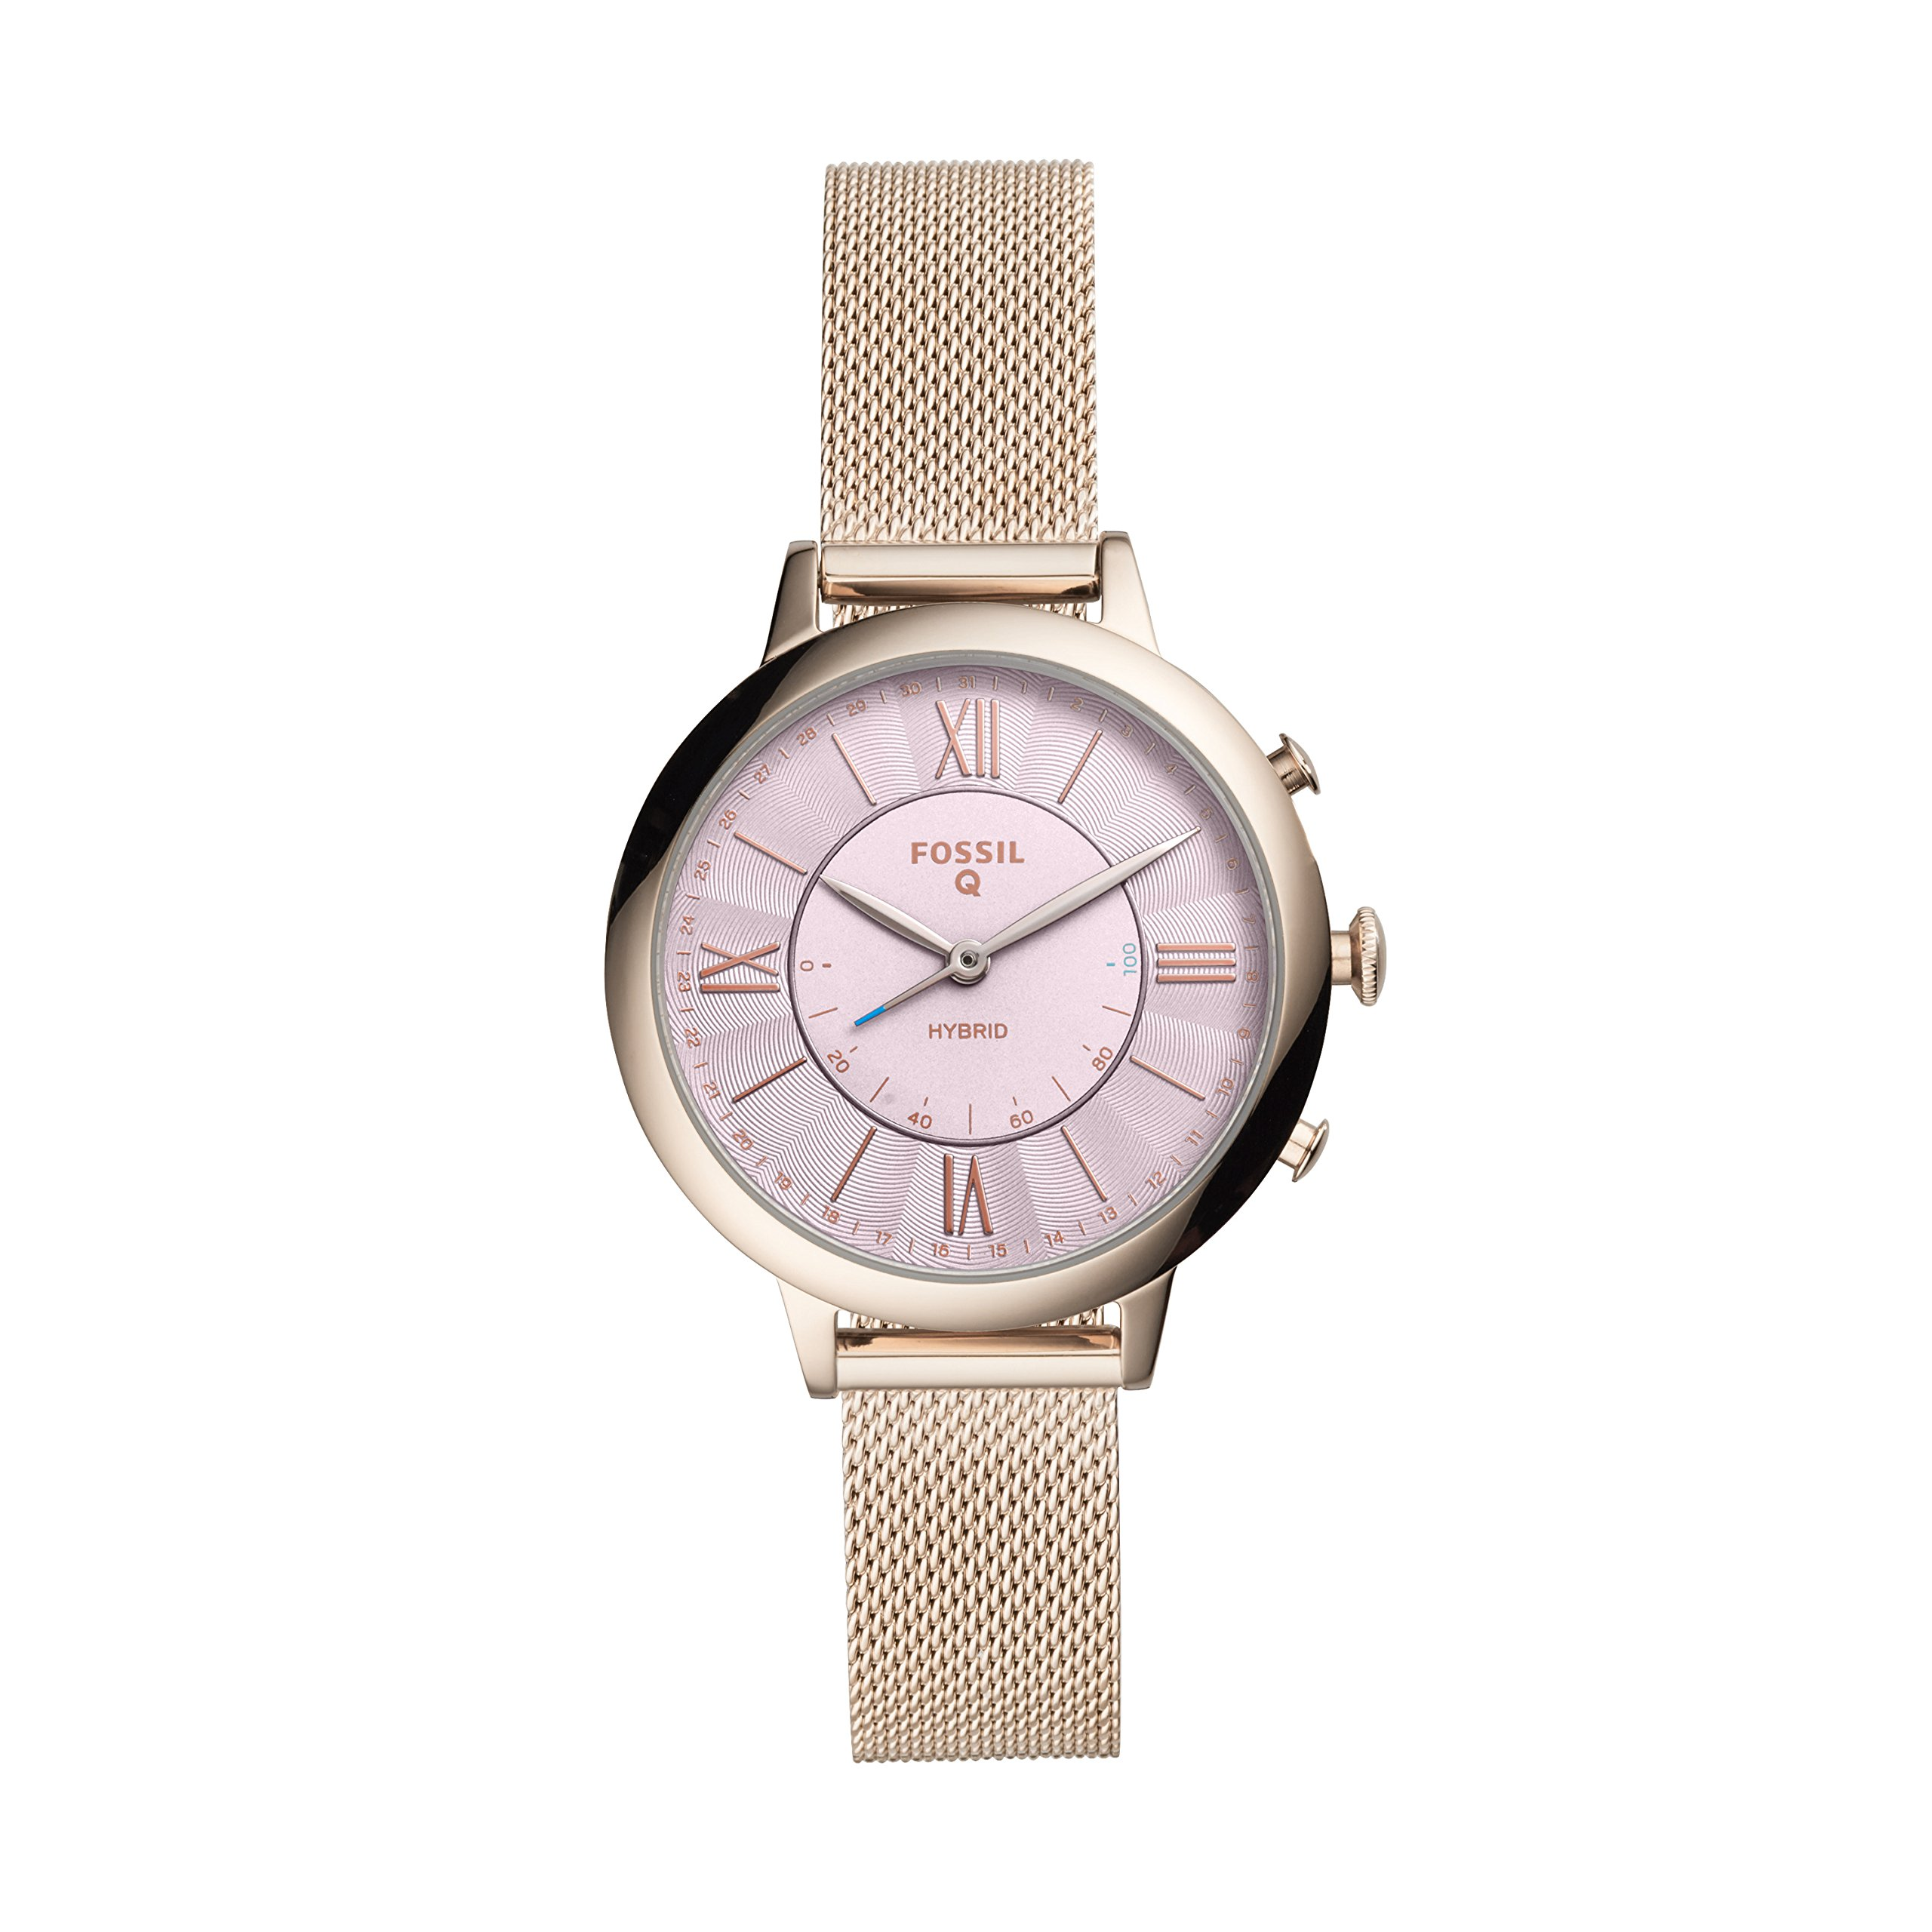 Fossil Women's Jacqueline Stainless Steel Hybrid Smartwatch by Fossil